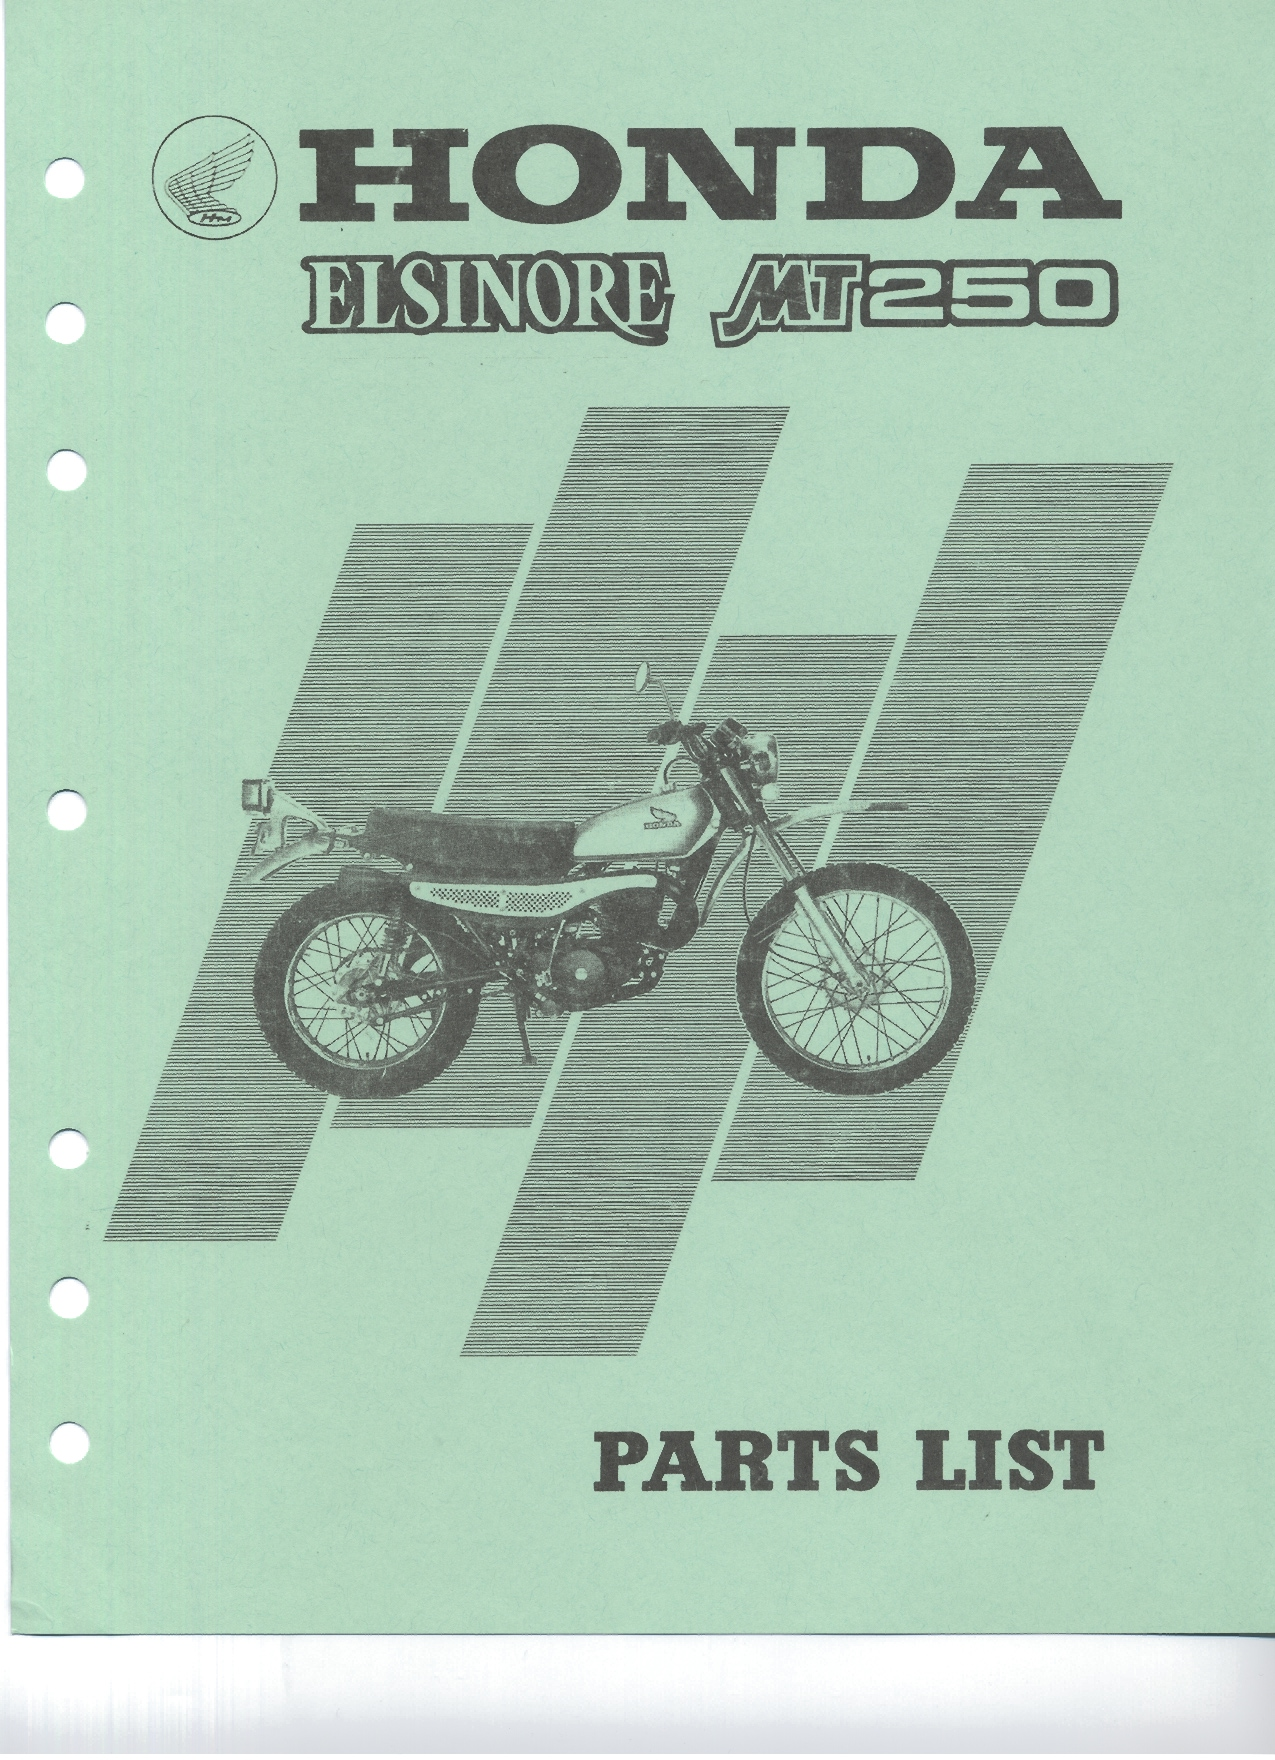 Parts list for Honda MT250 Elsinore (1974)